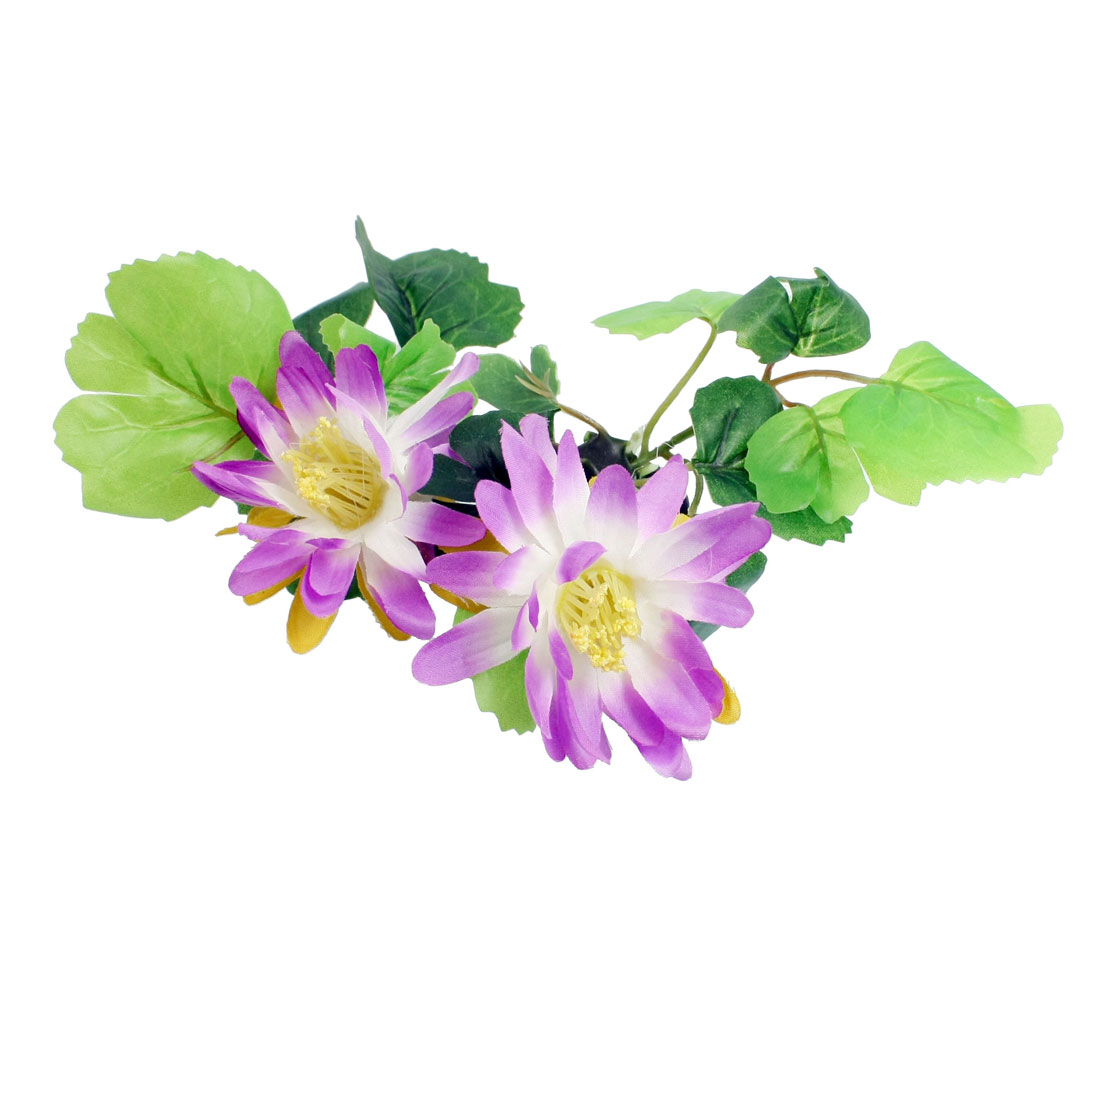 "3.5"" Height Green Leaf White Purple Flower Aquarium Simulation Plant Ornament"